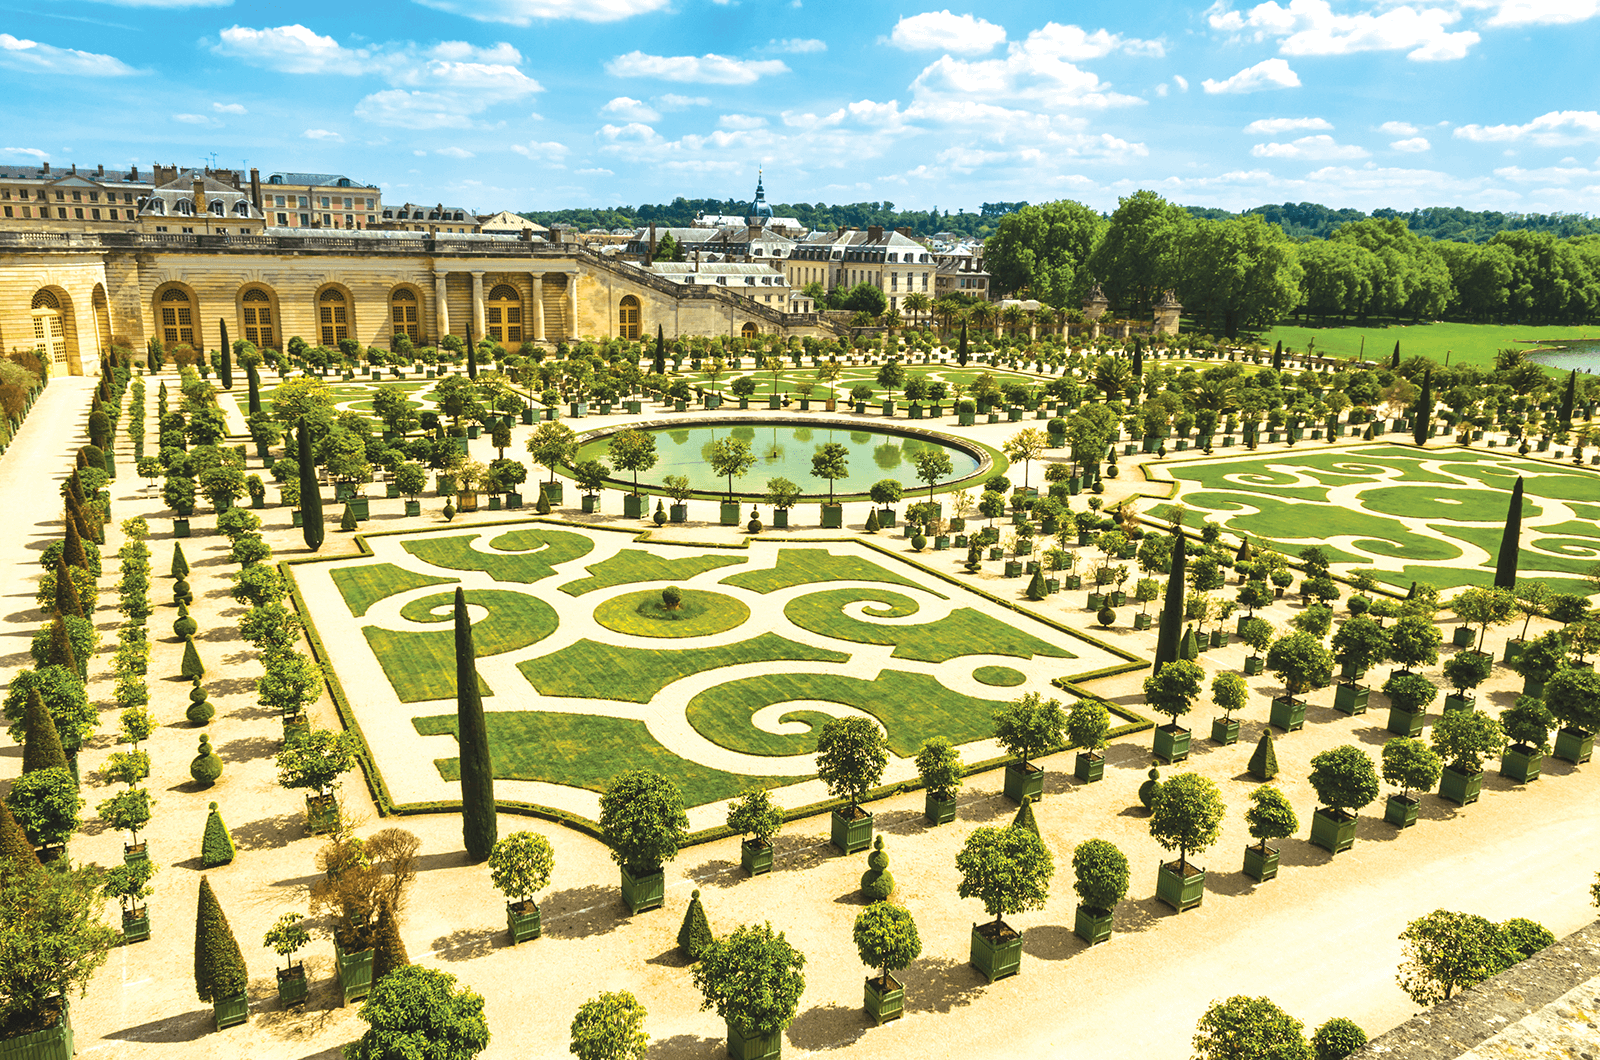 Versailles near Paris, France